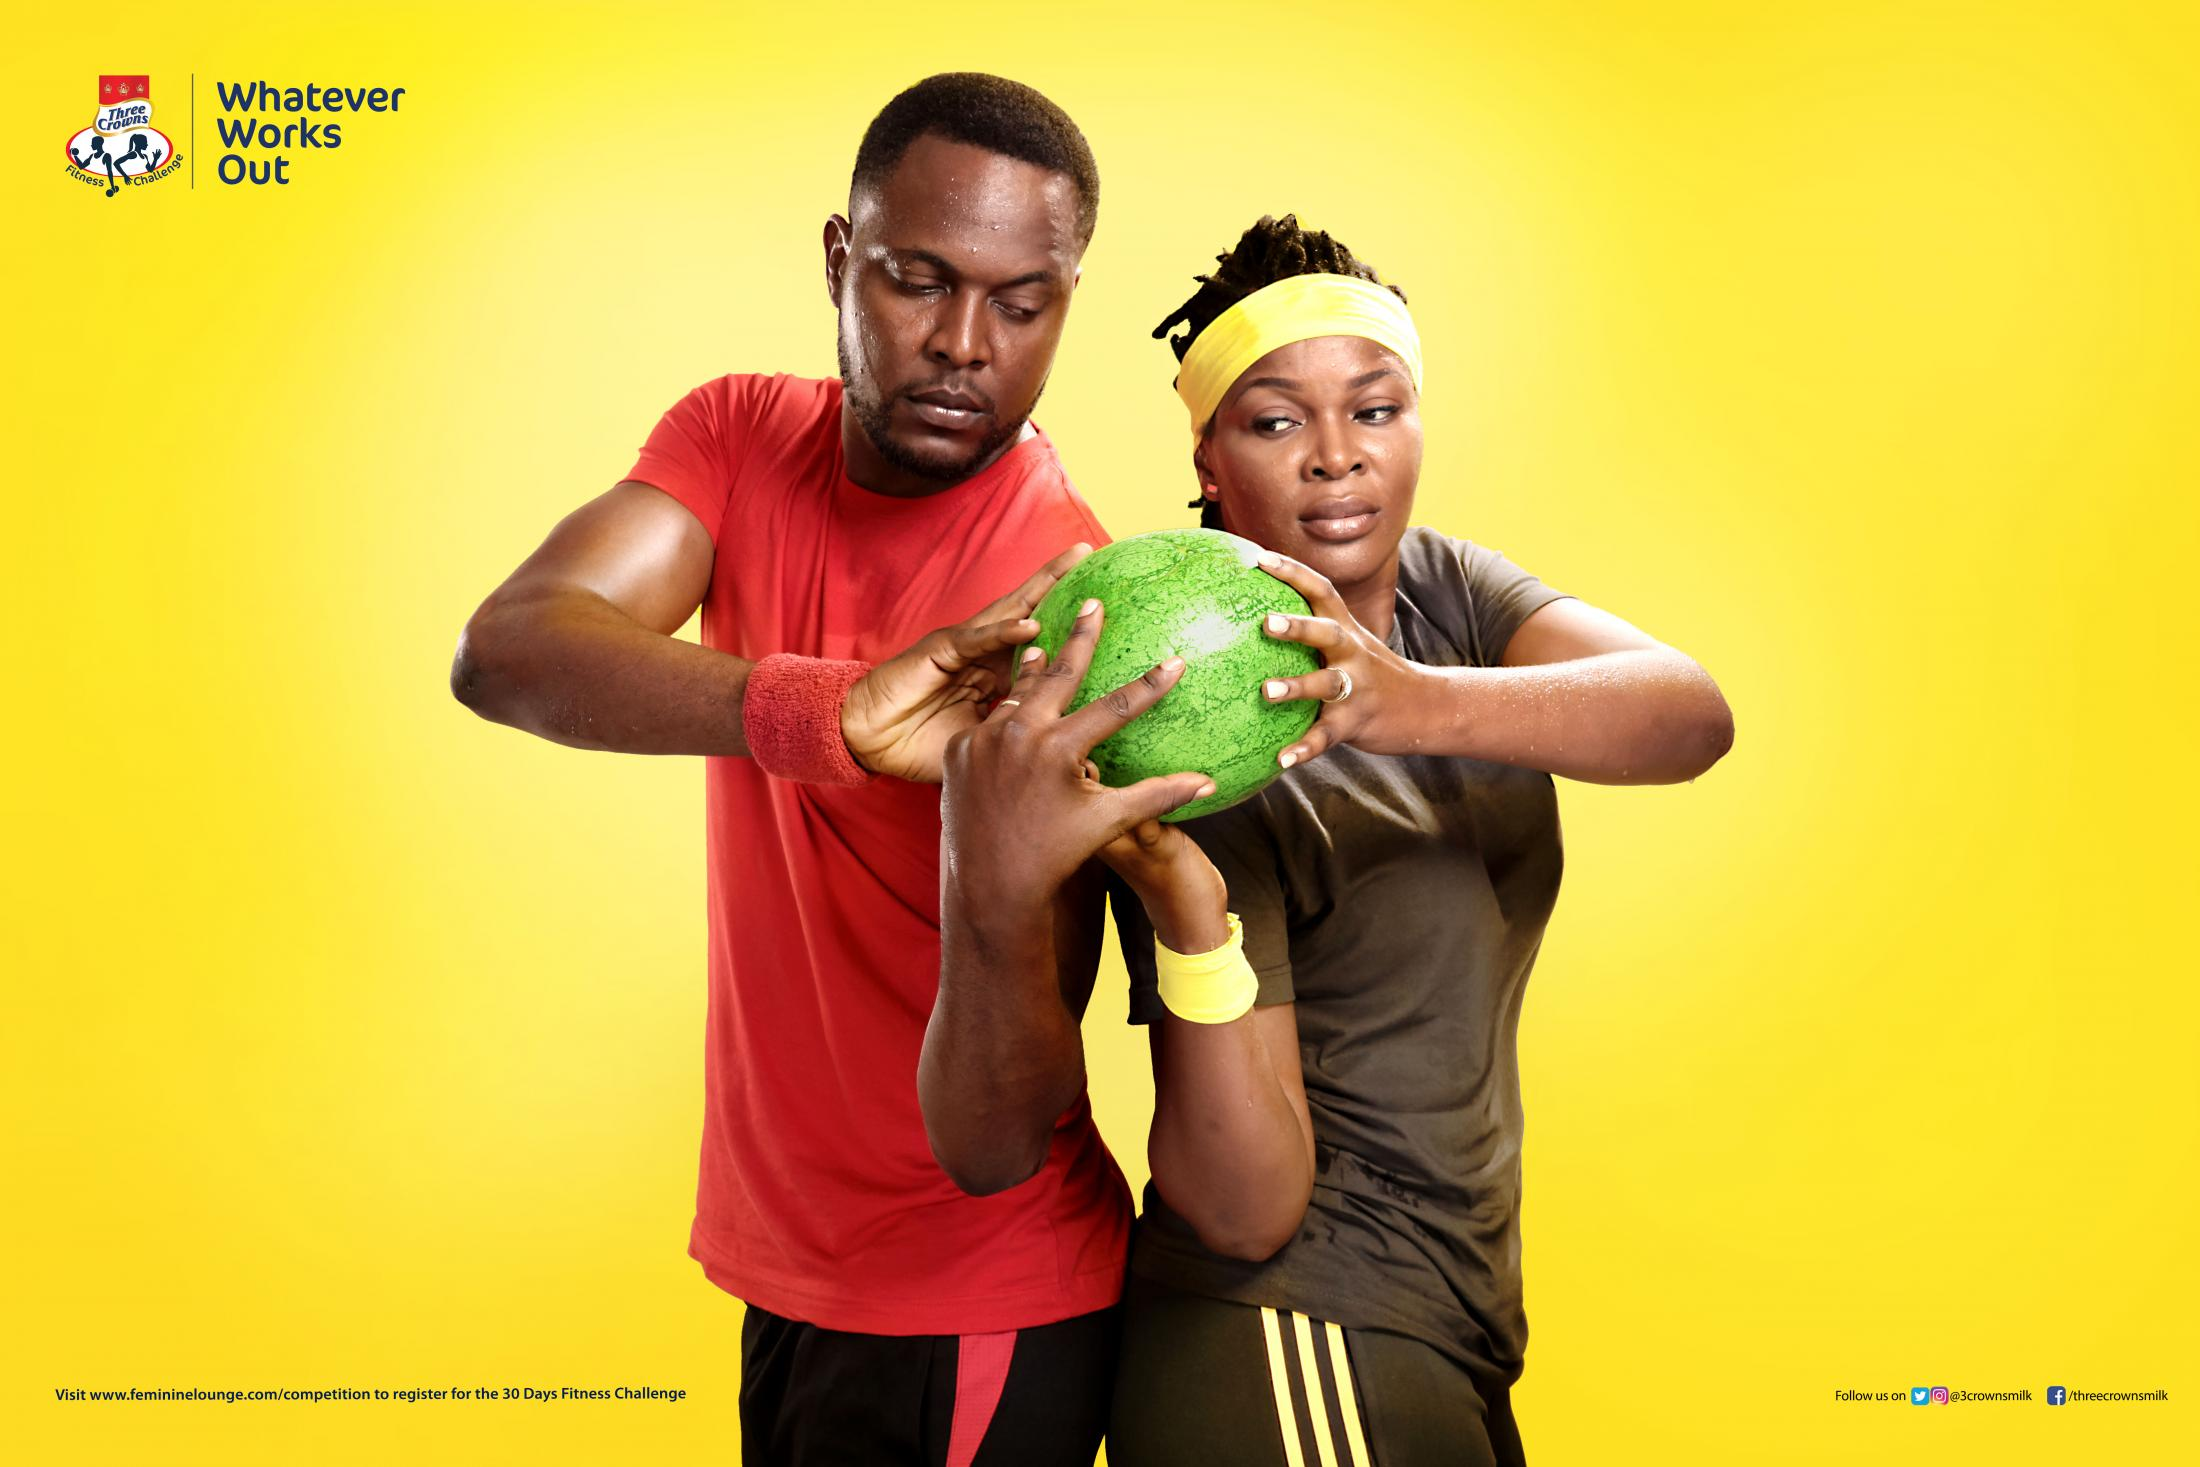 Three Crowns Milk Print Ad - Three Crowns Fitness Challenge Reloaded - Watermelon